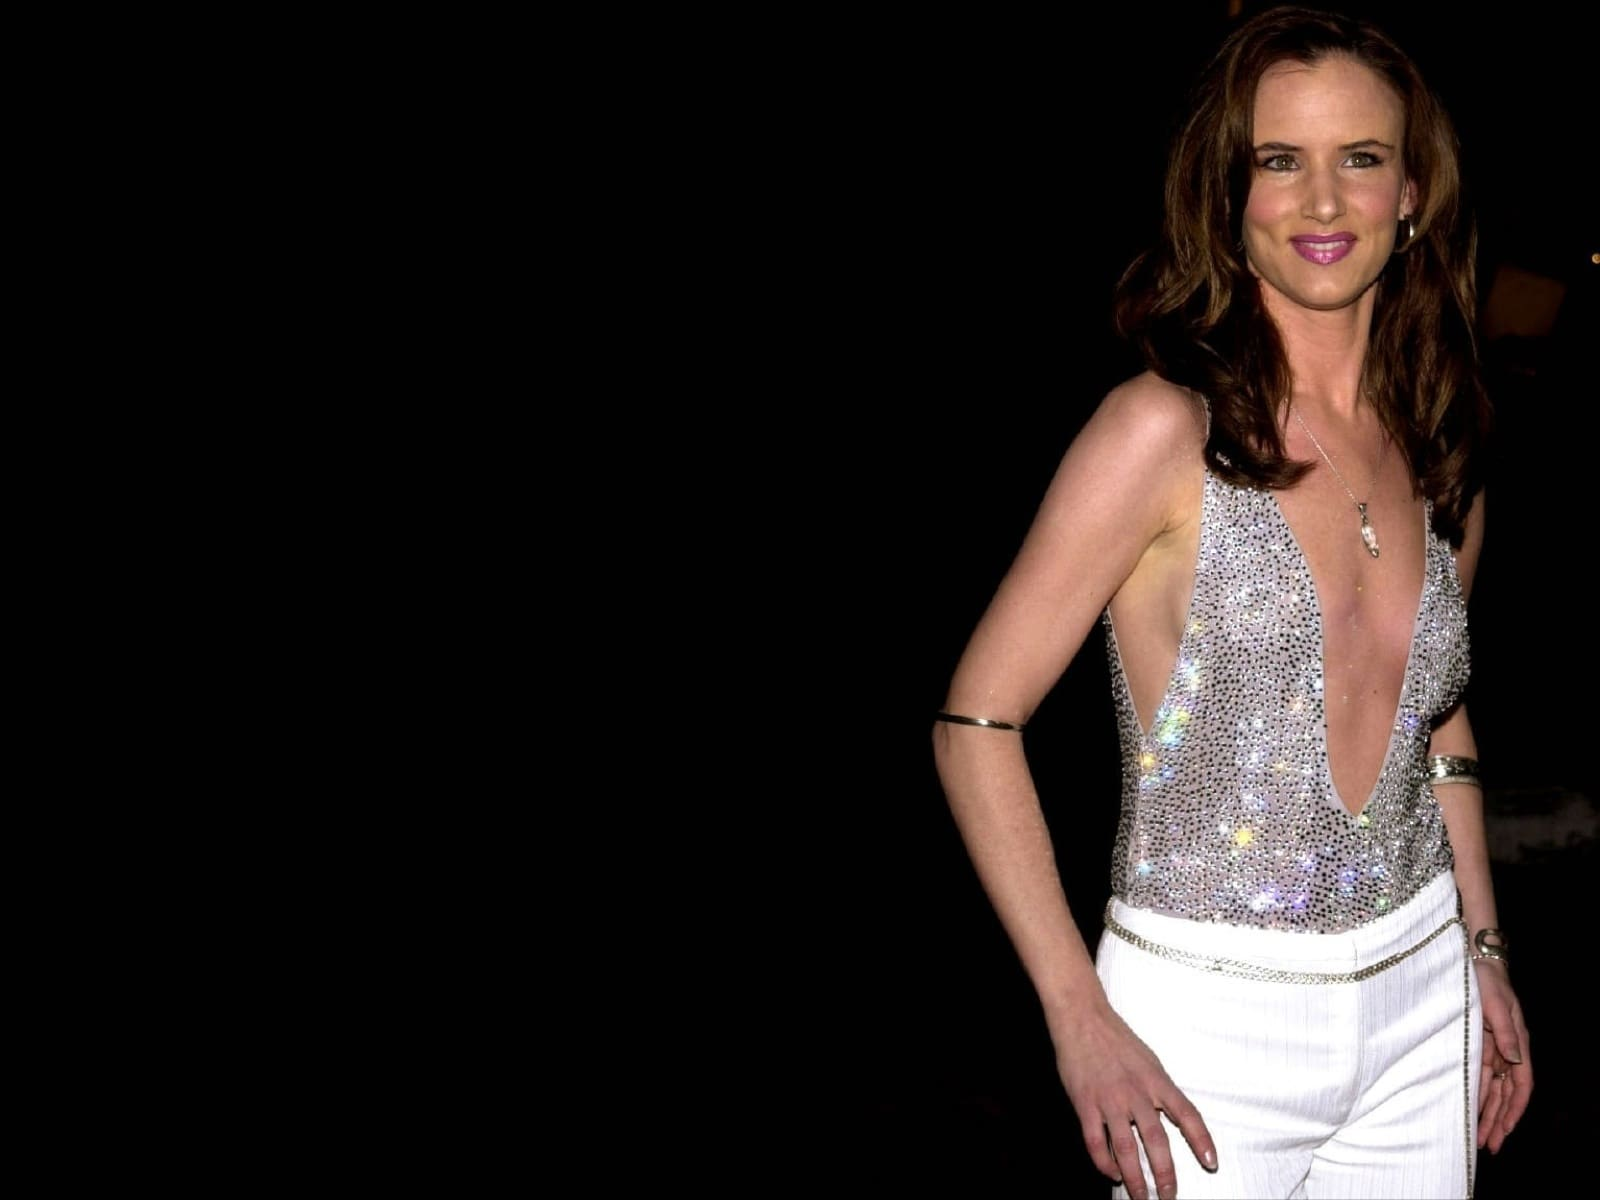 Juliette Lewis Desktop wallpapers